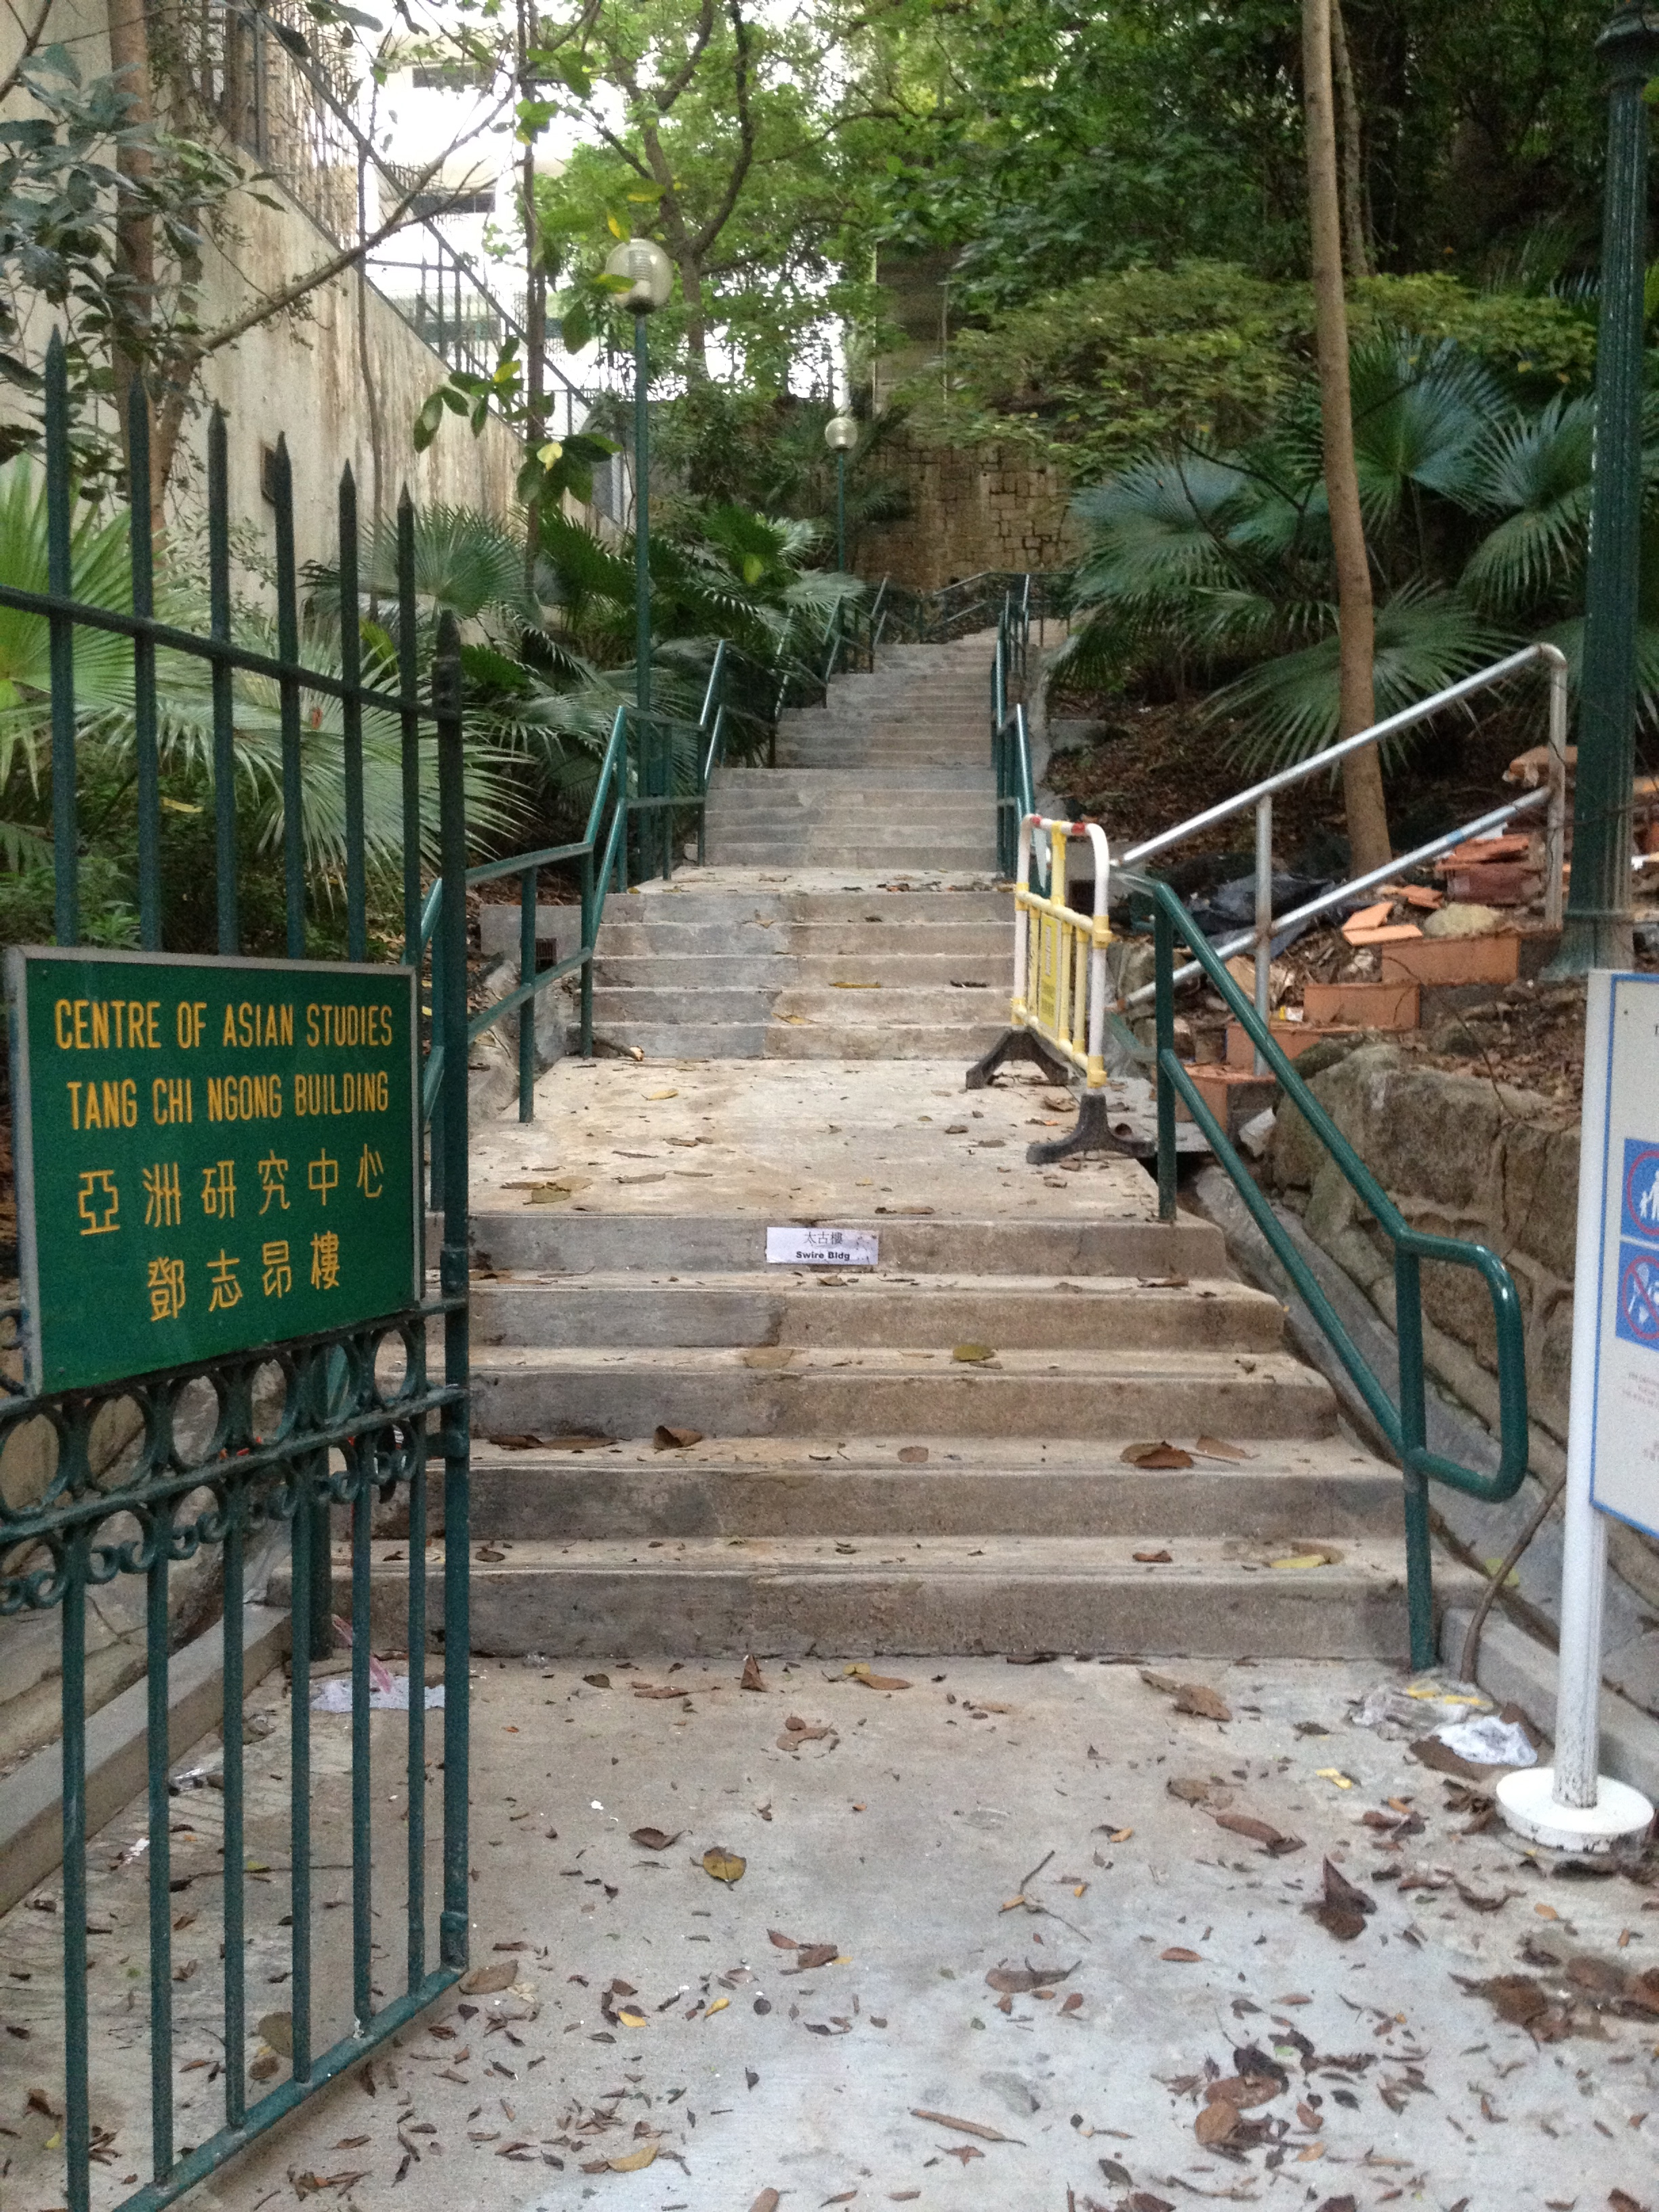 Centre of Asian Studies stairs, Bonham Road